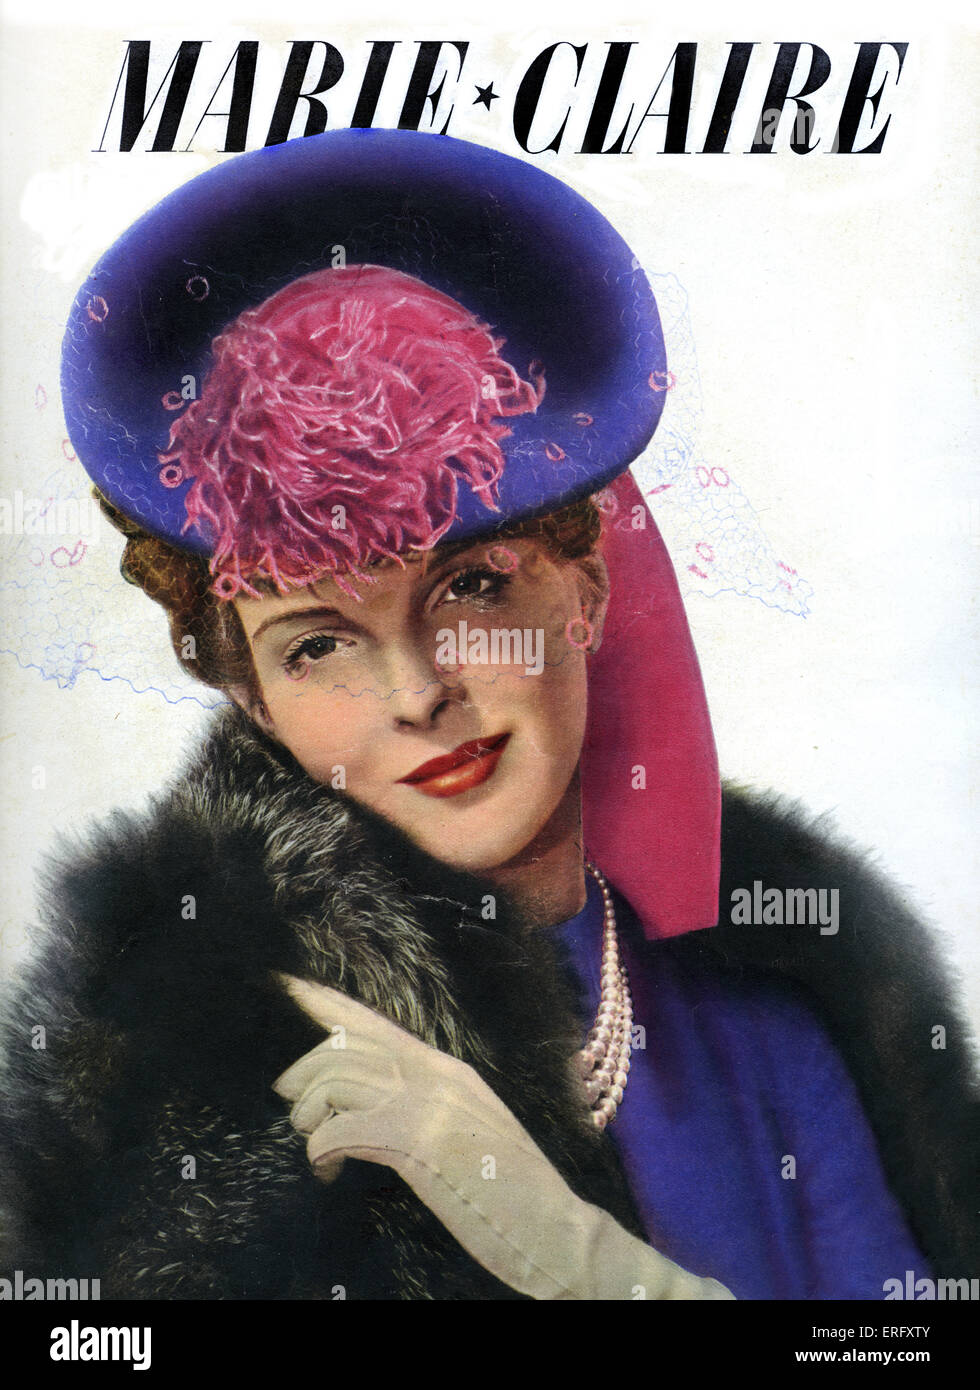 Marie Claire, women's magazine  - 23 September 1938. Hat designed by Suzanne Talbot, photo by Saad. - Stock Image